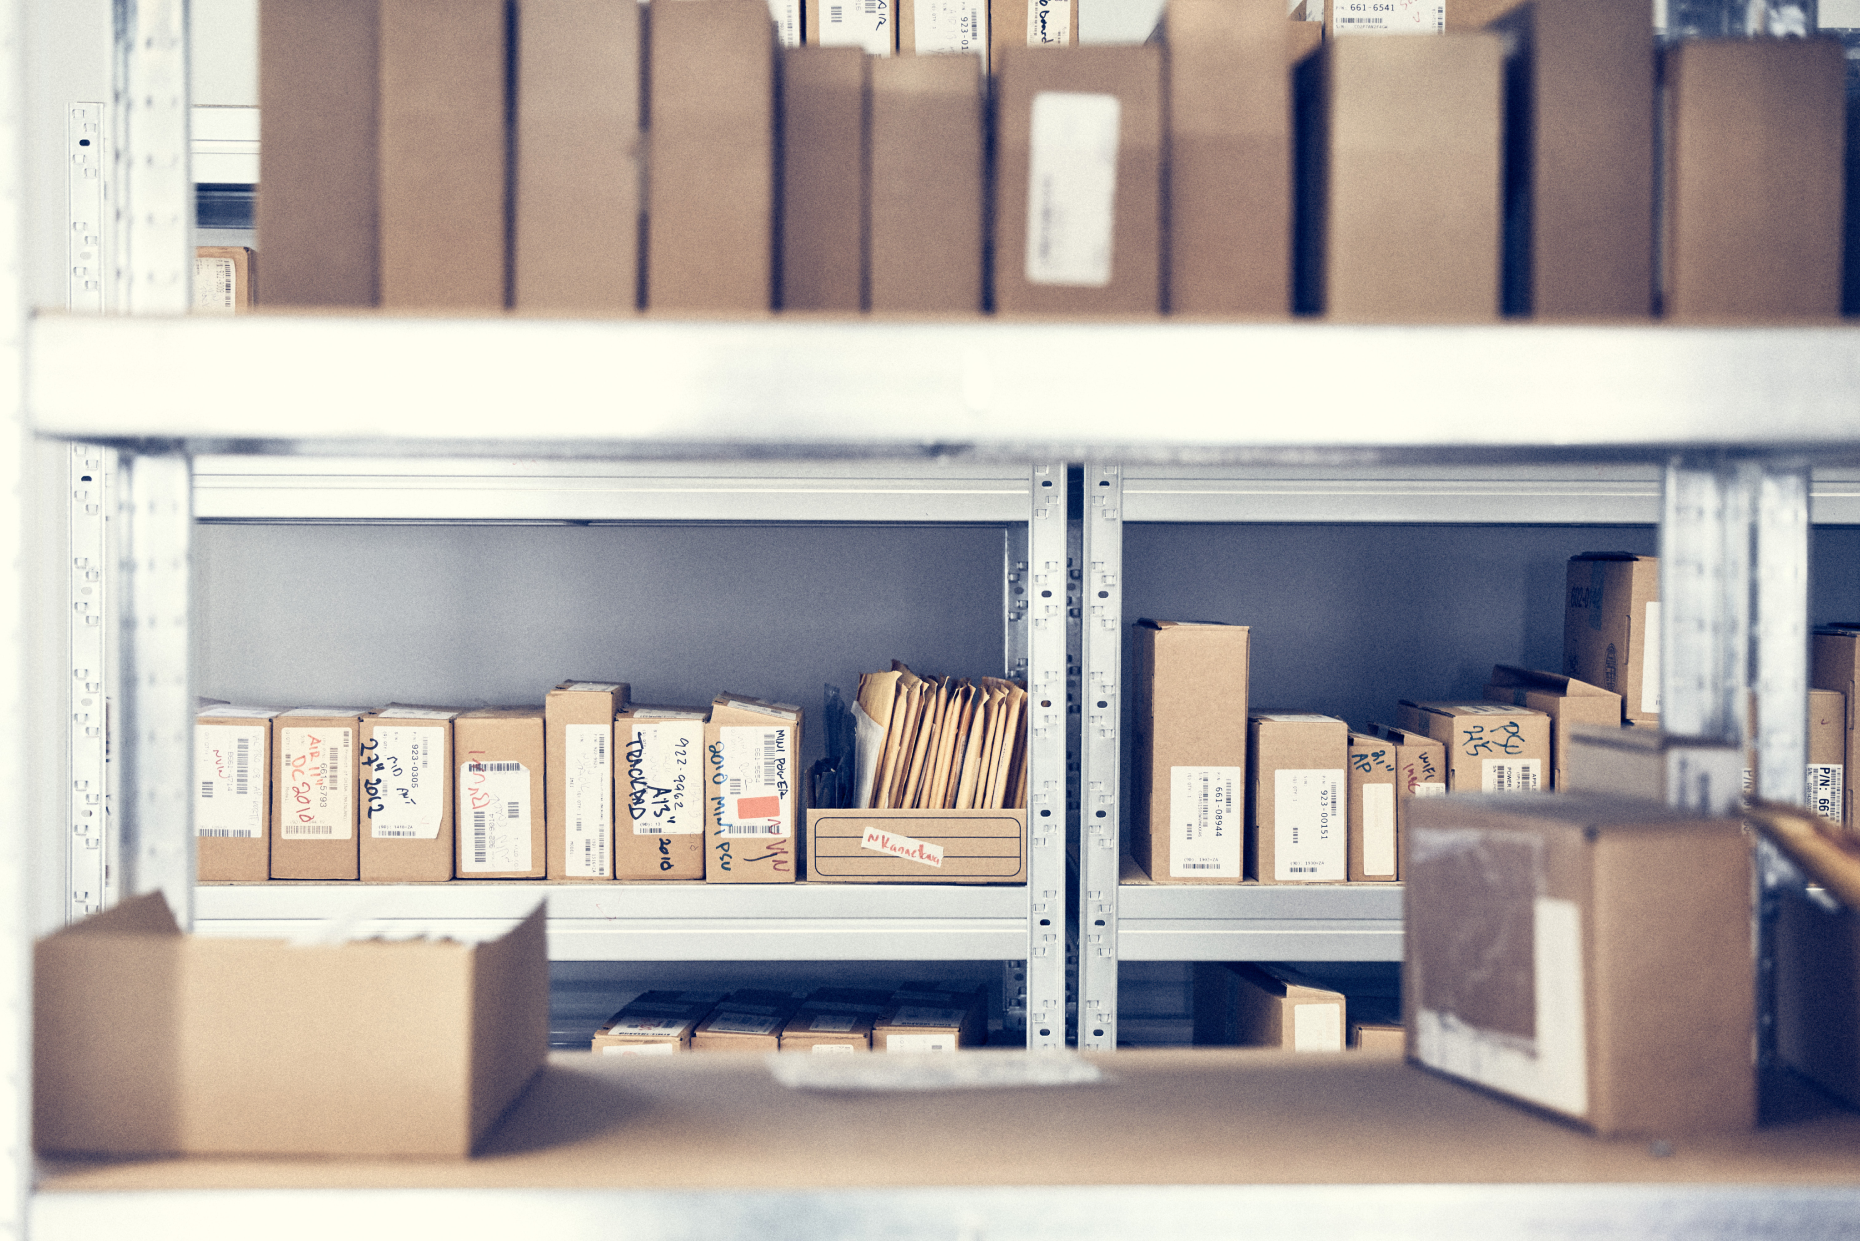 A stock and inventory room at a Apple Authorized Service Provider. AASPs need to maintain workshops and storage spaces that meet Apple's guidelines.